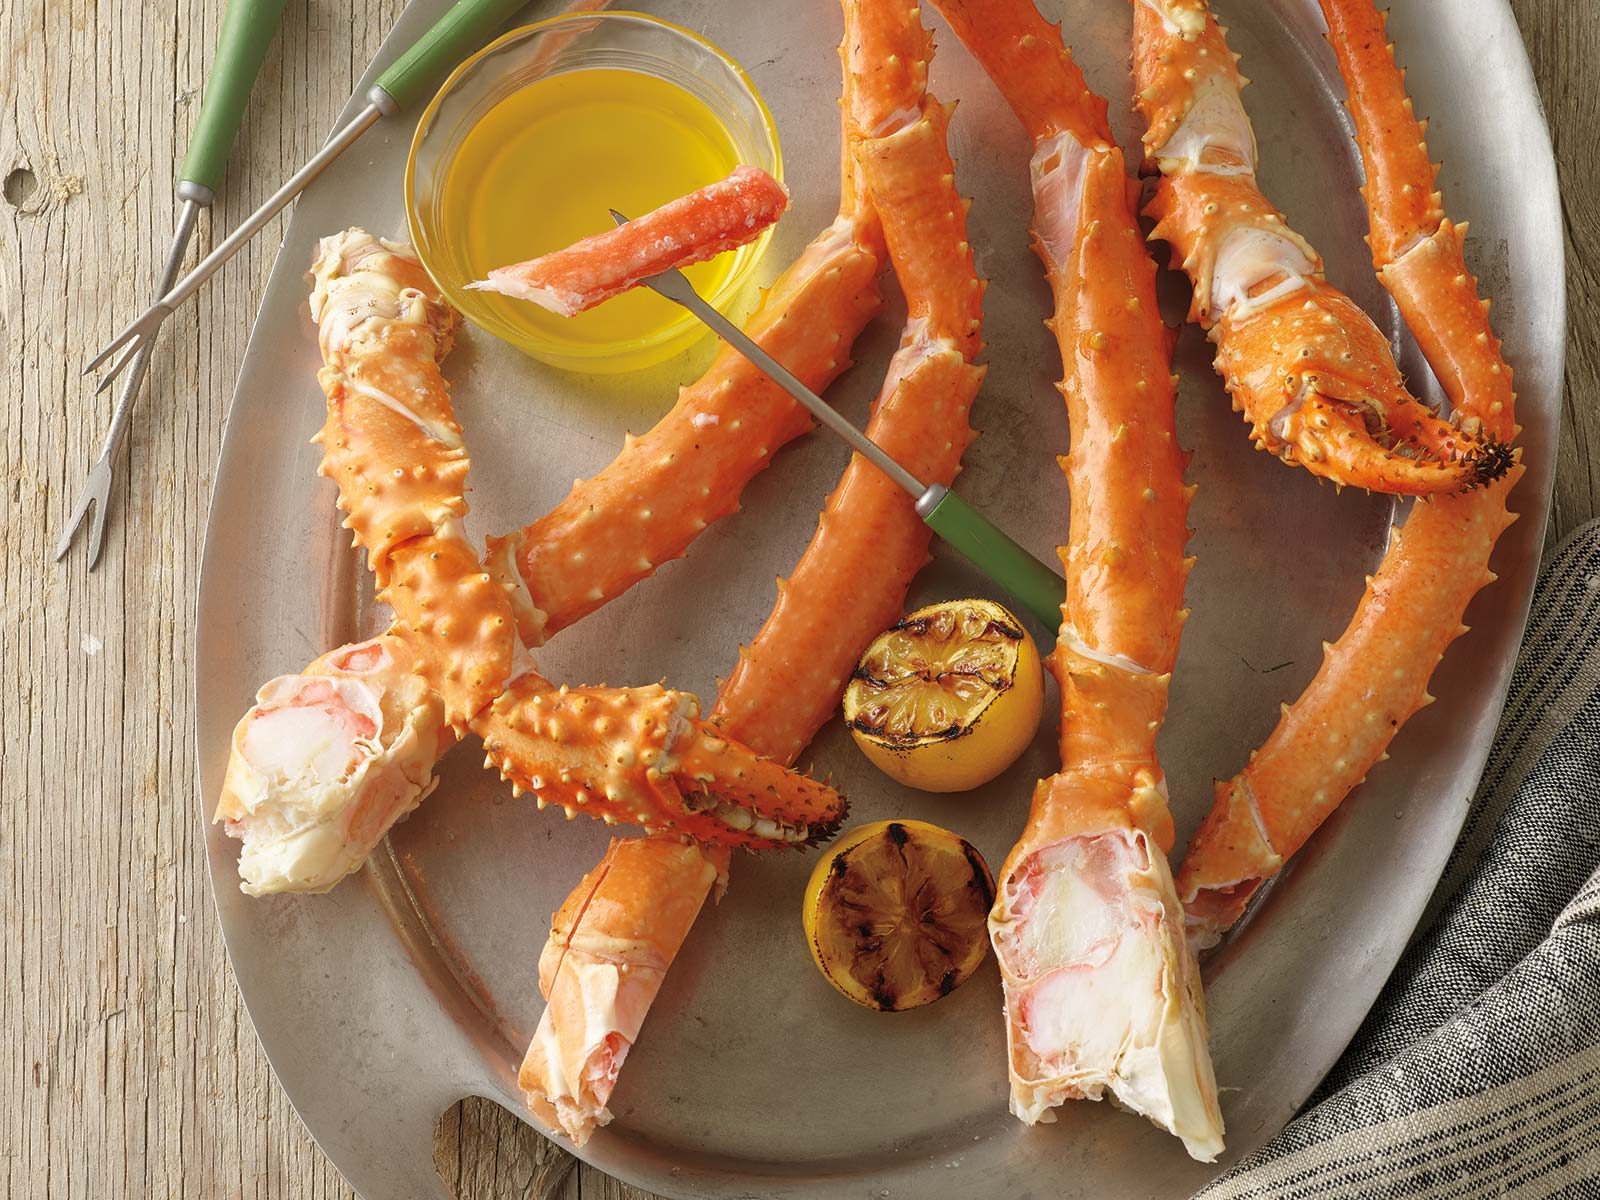 Golden King Crab Legs & Claws 16-20 Count Splits (1/10 lb) 415411